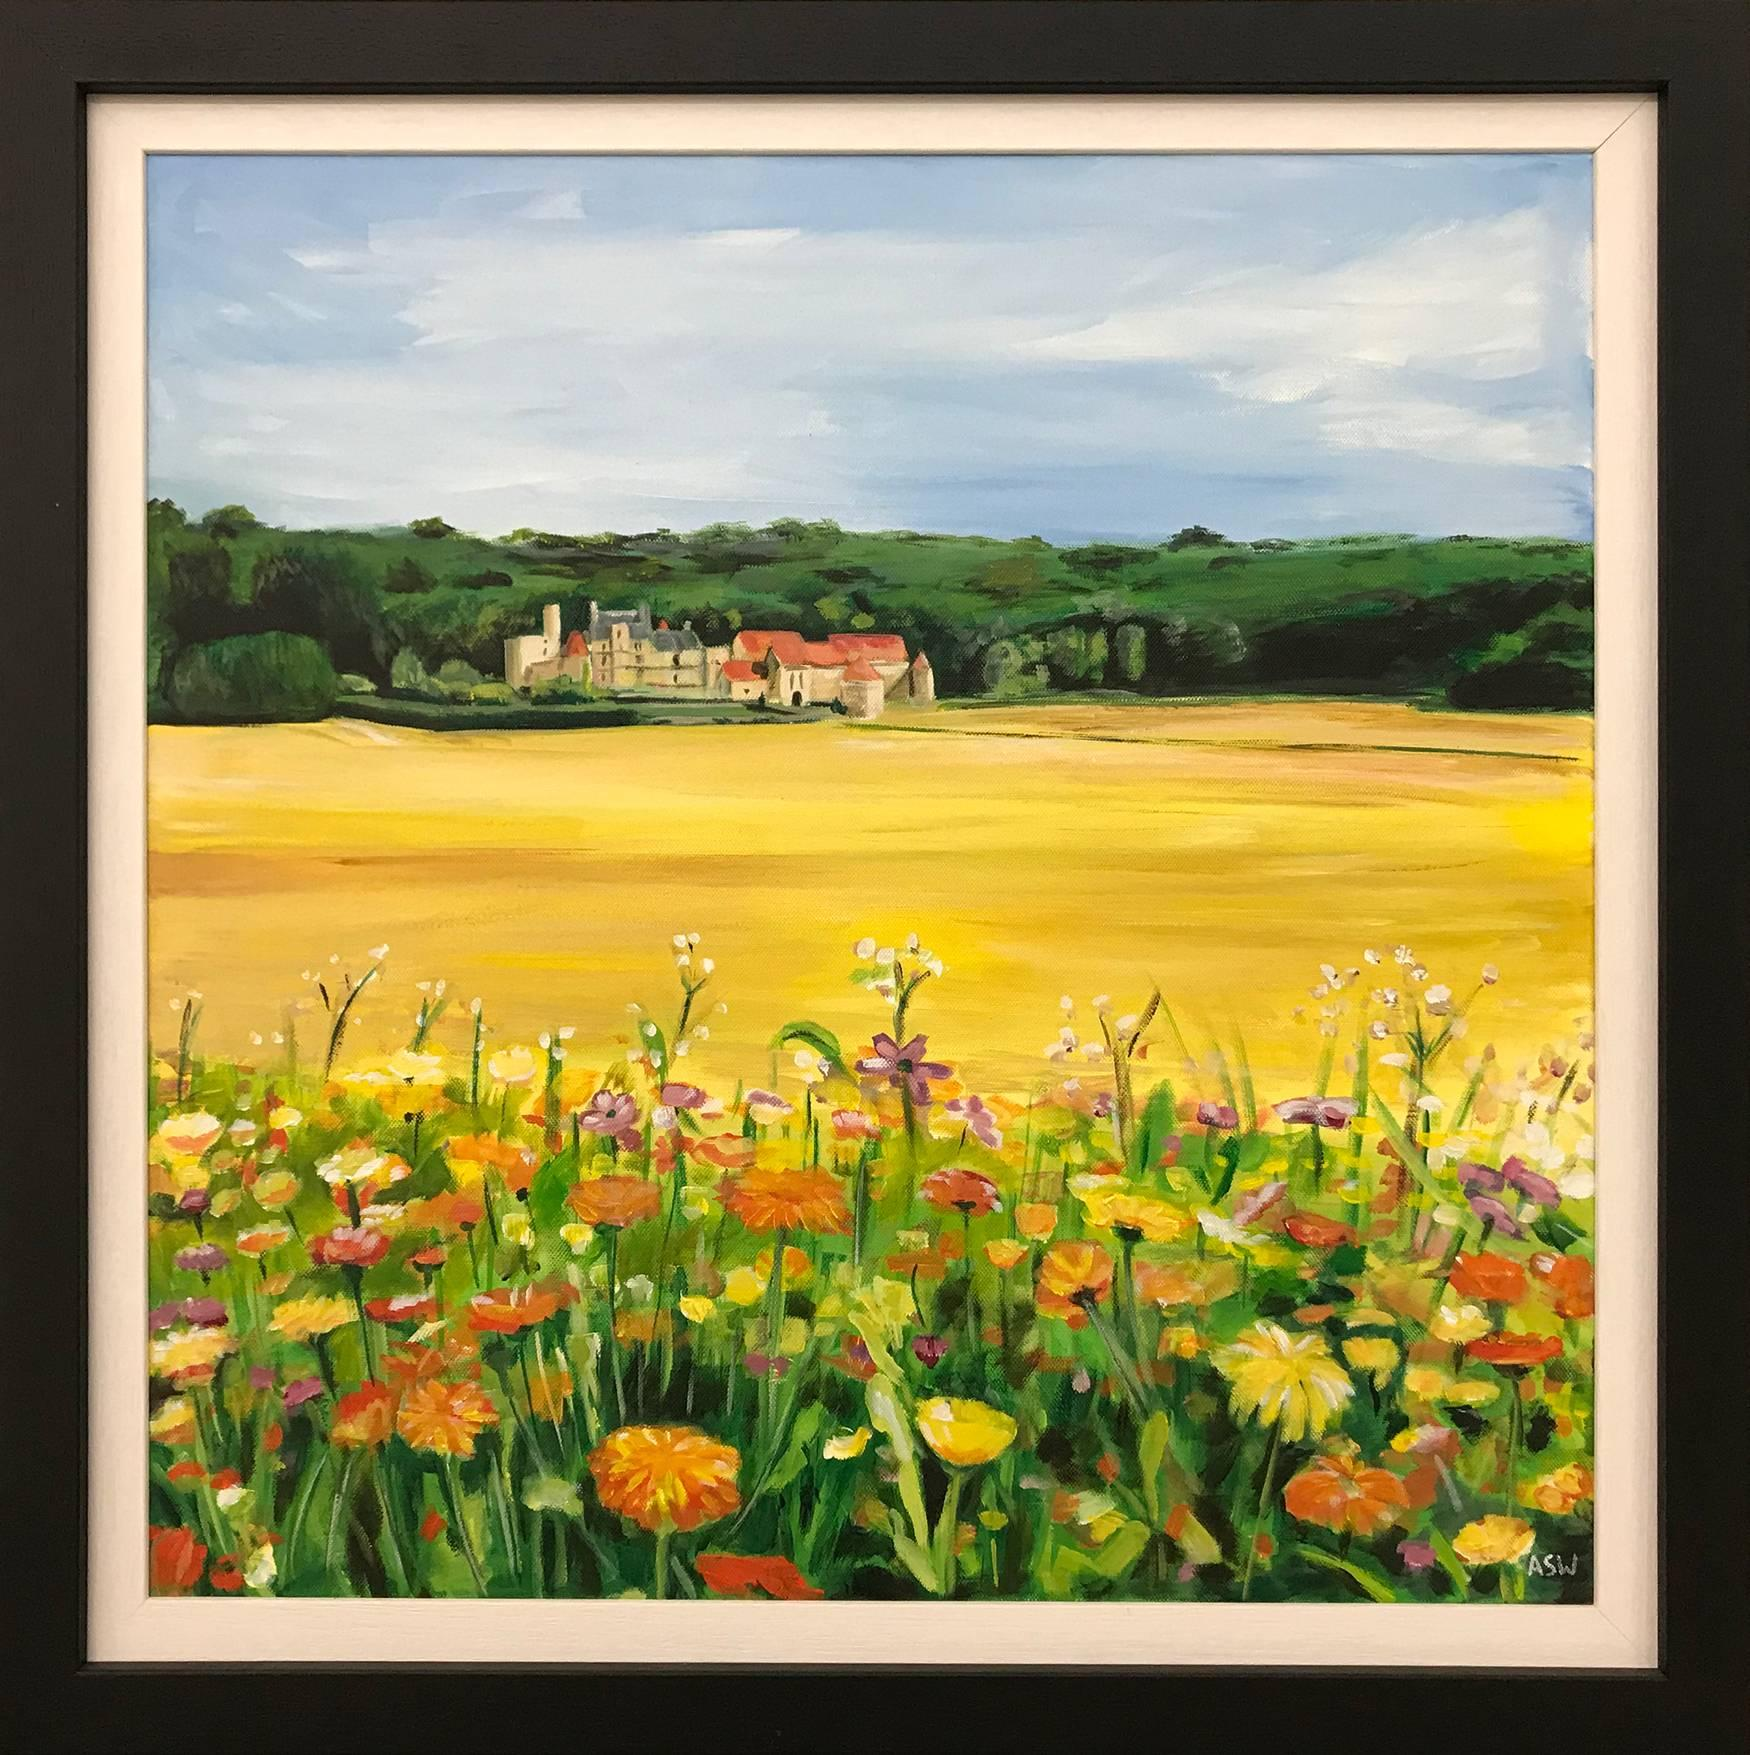 French Chateau Wild Flowers in Field Burgundy France by English Landscape Artist